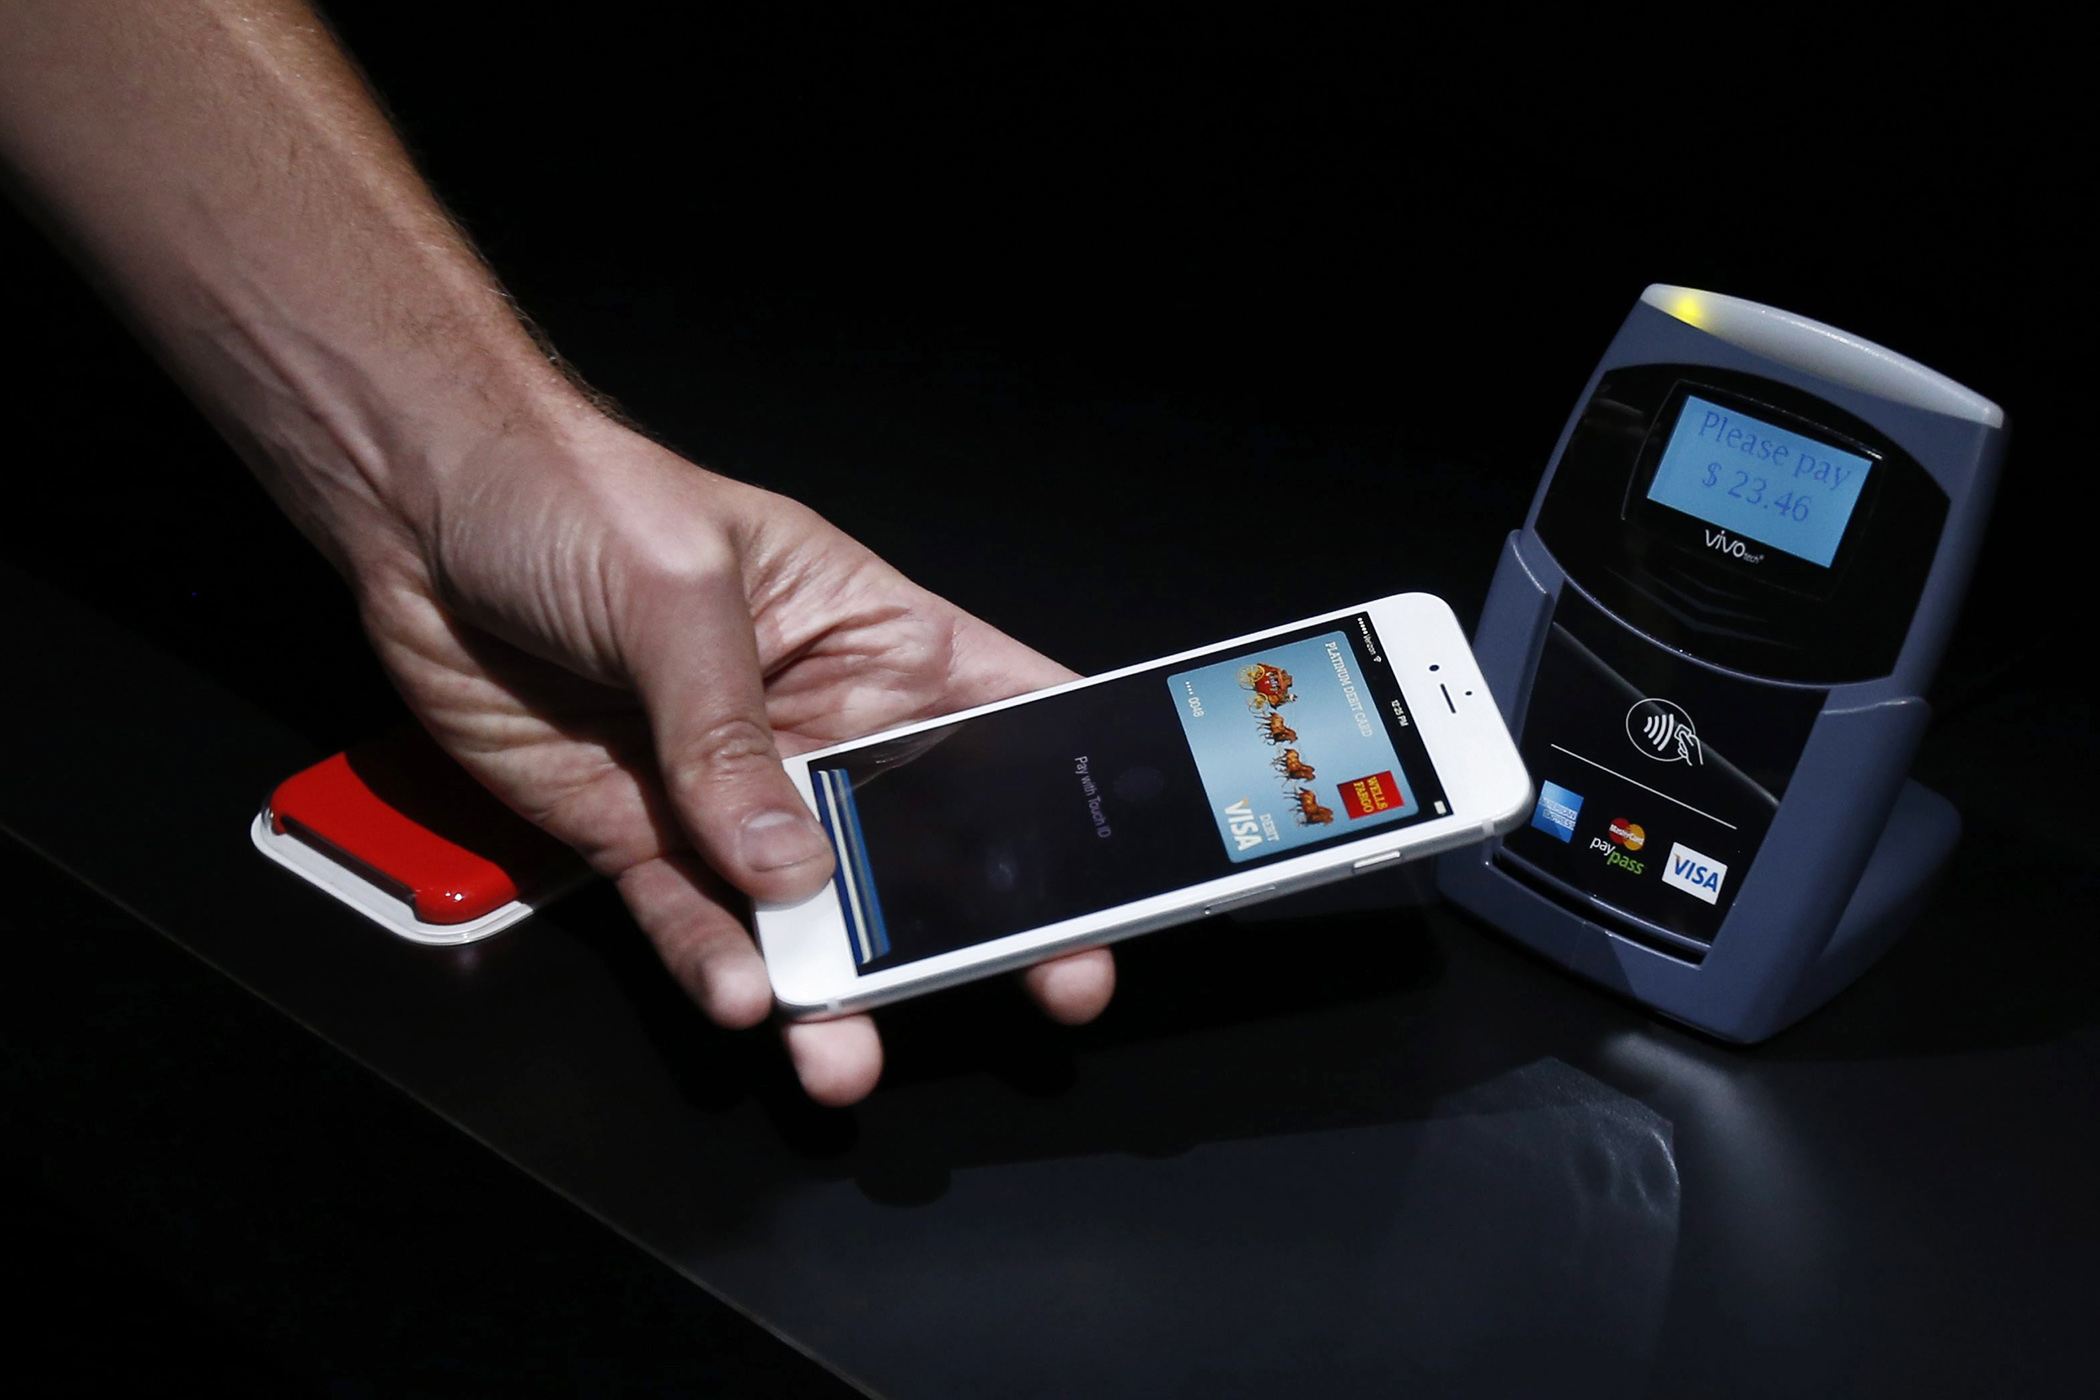 Demonstration on how the new Apple Pay works during Apple's launch event at the Flint Center for the Performing Arts in Cupertino, California, September 9, 2014.